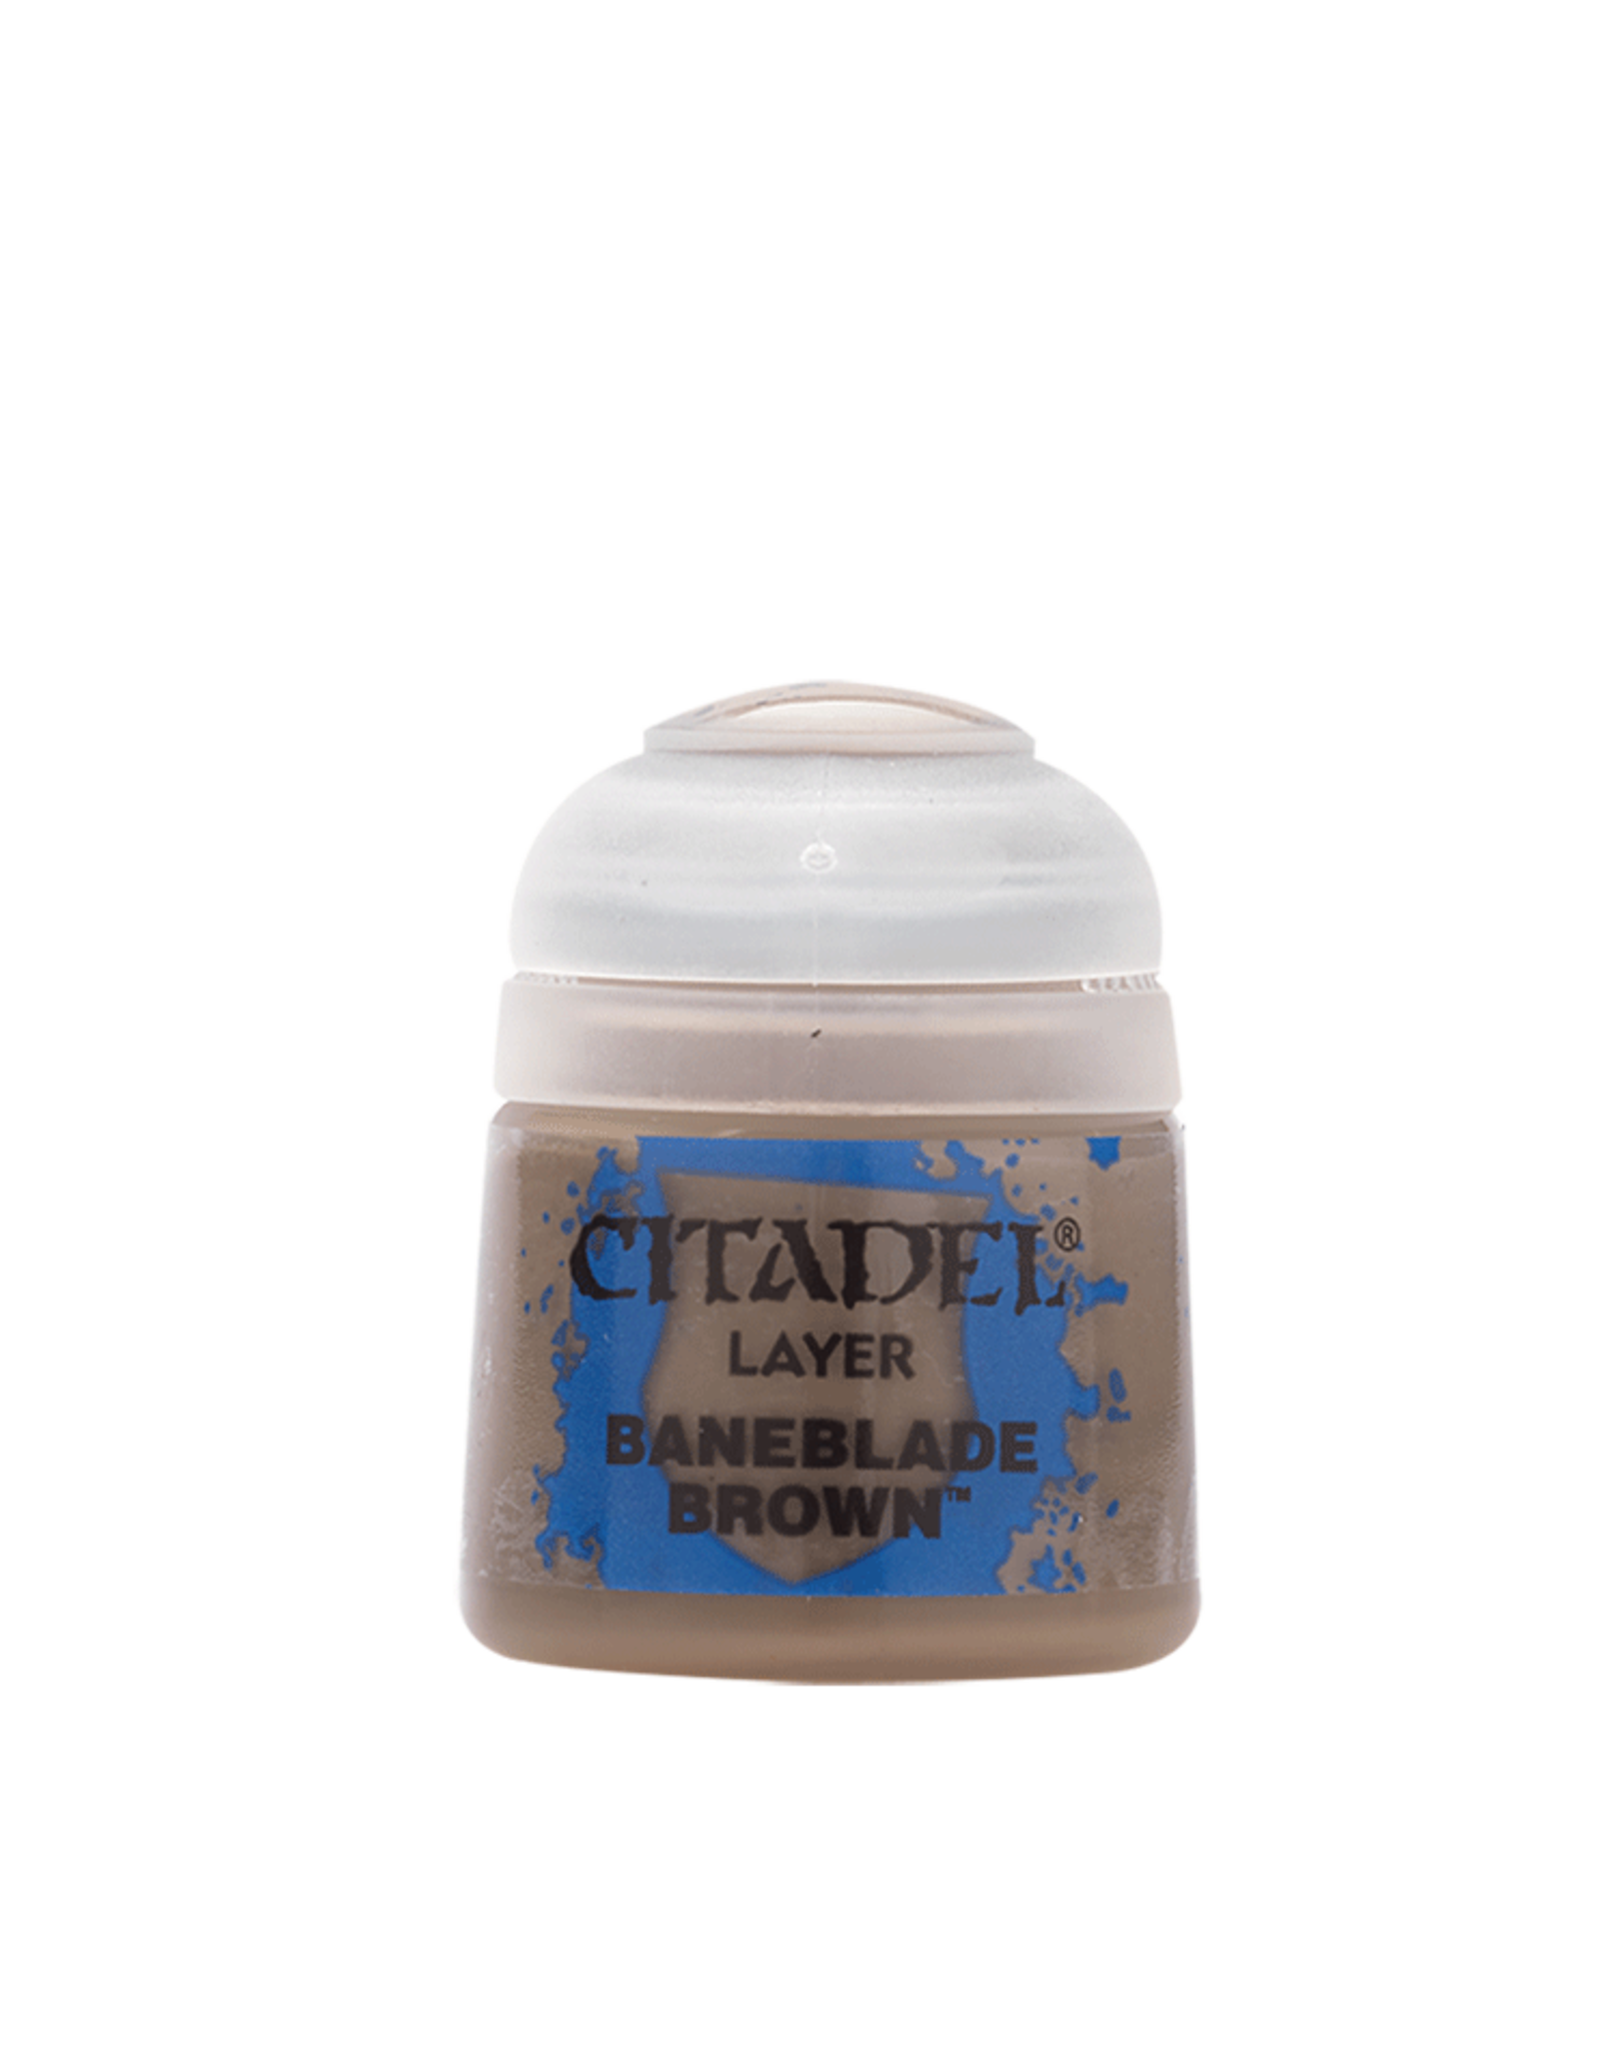 Games Workshop Baneblade Brown paint pot